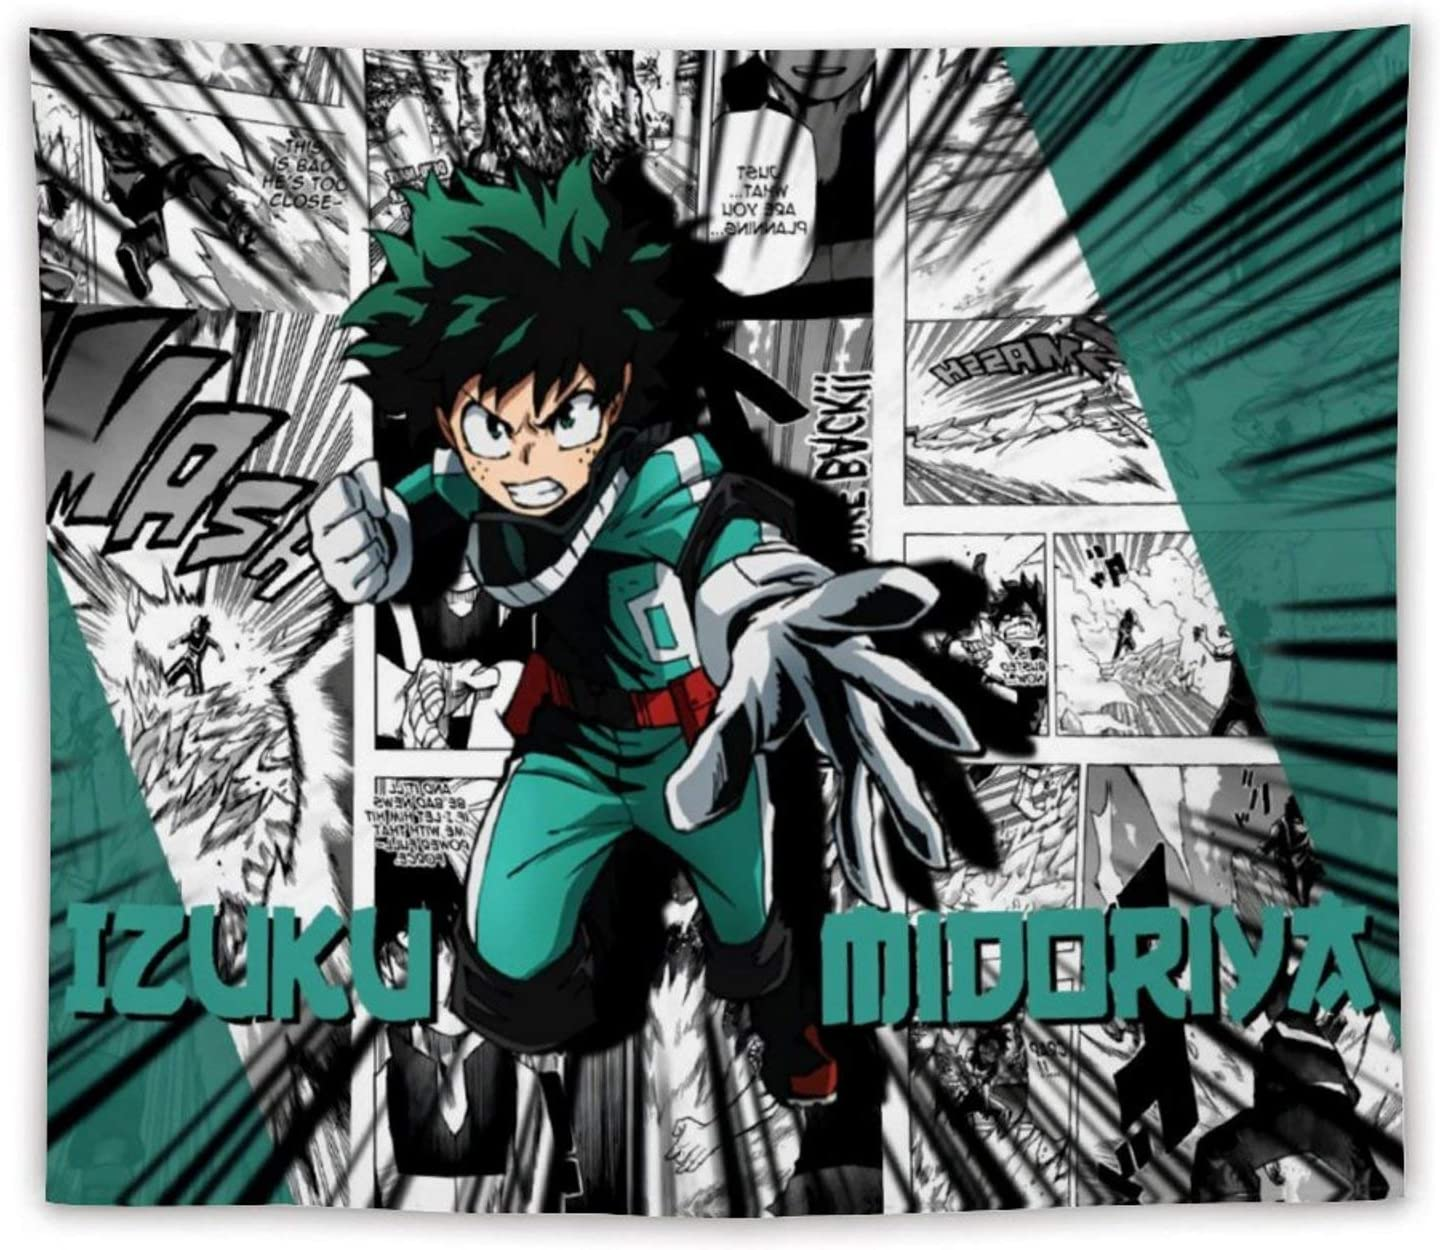 """Twaowaka Tapestry Wall Hanging My Hero Academia Tapestries for Living Room Beach Blanket Home Decoration(50""""x60"""")"""